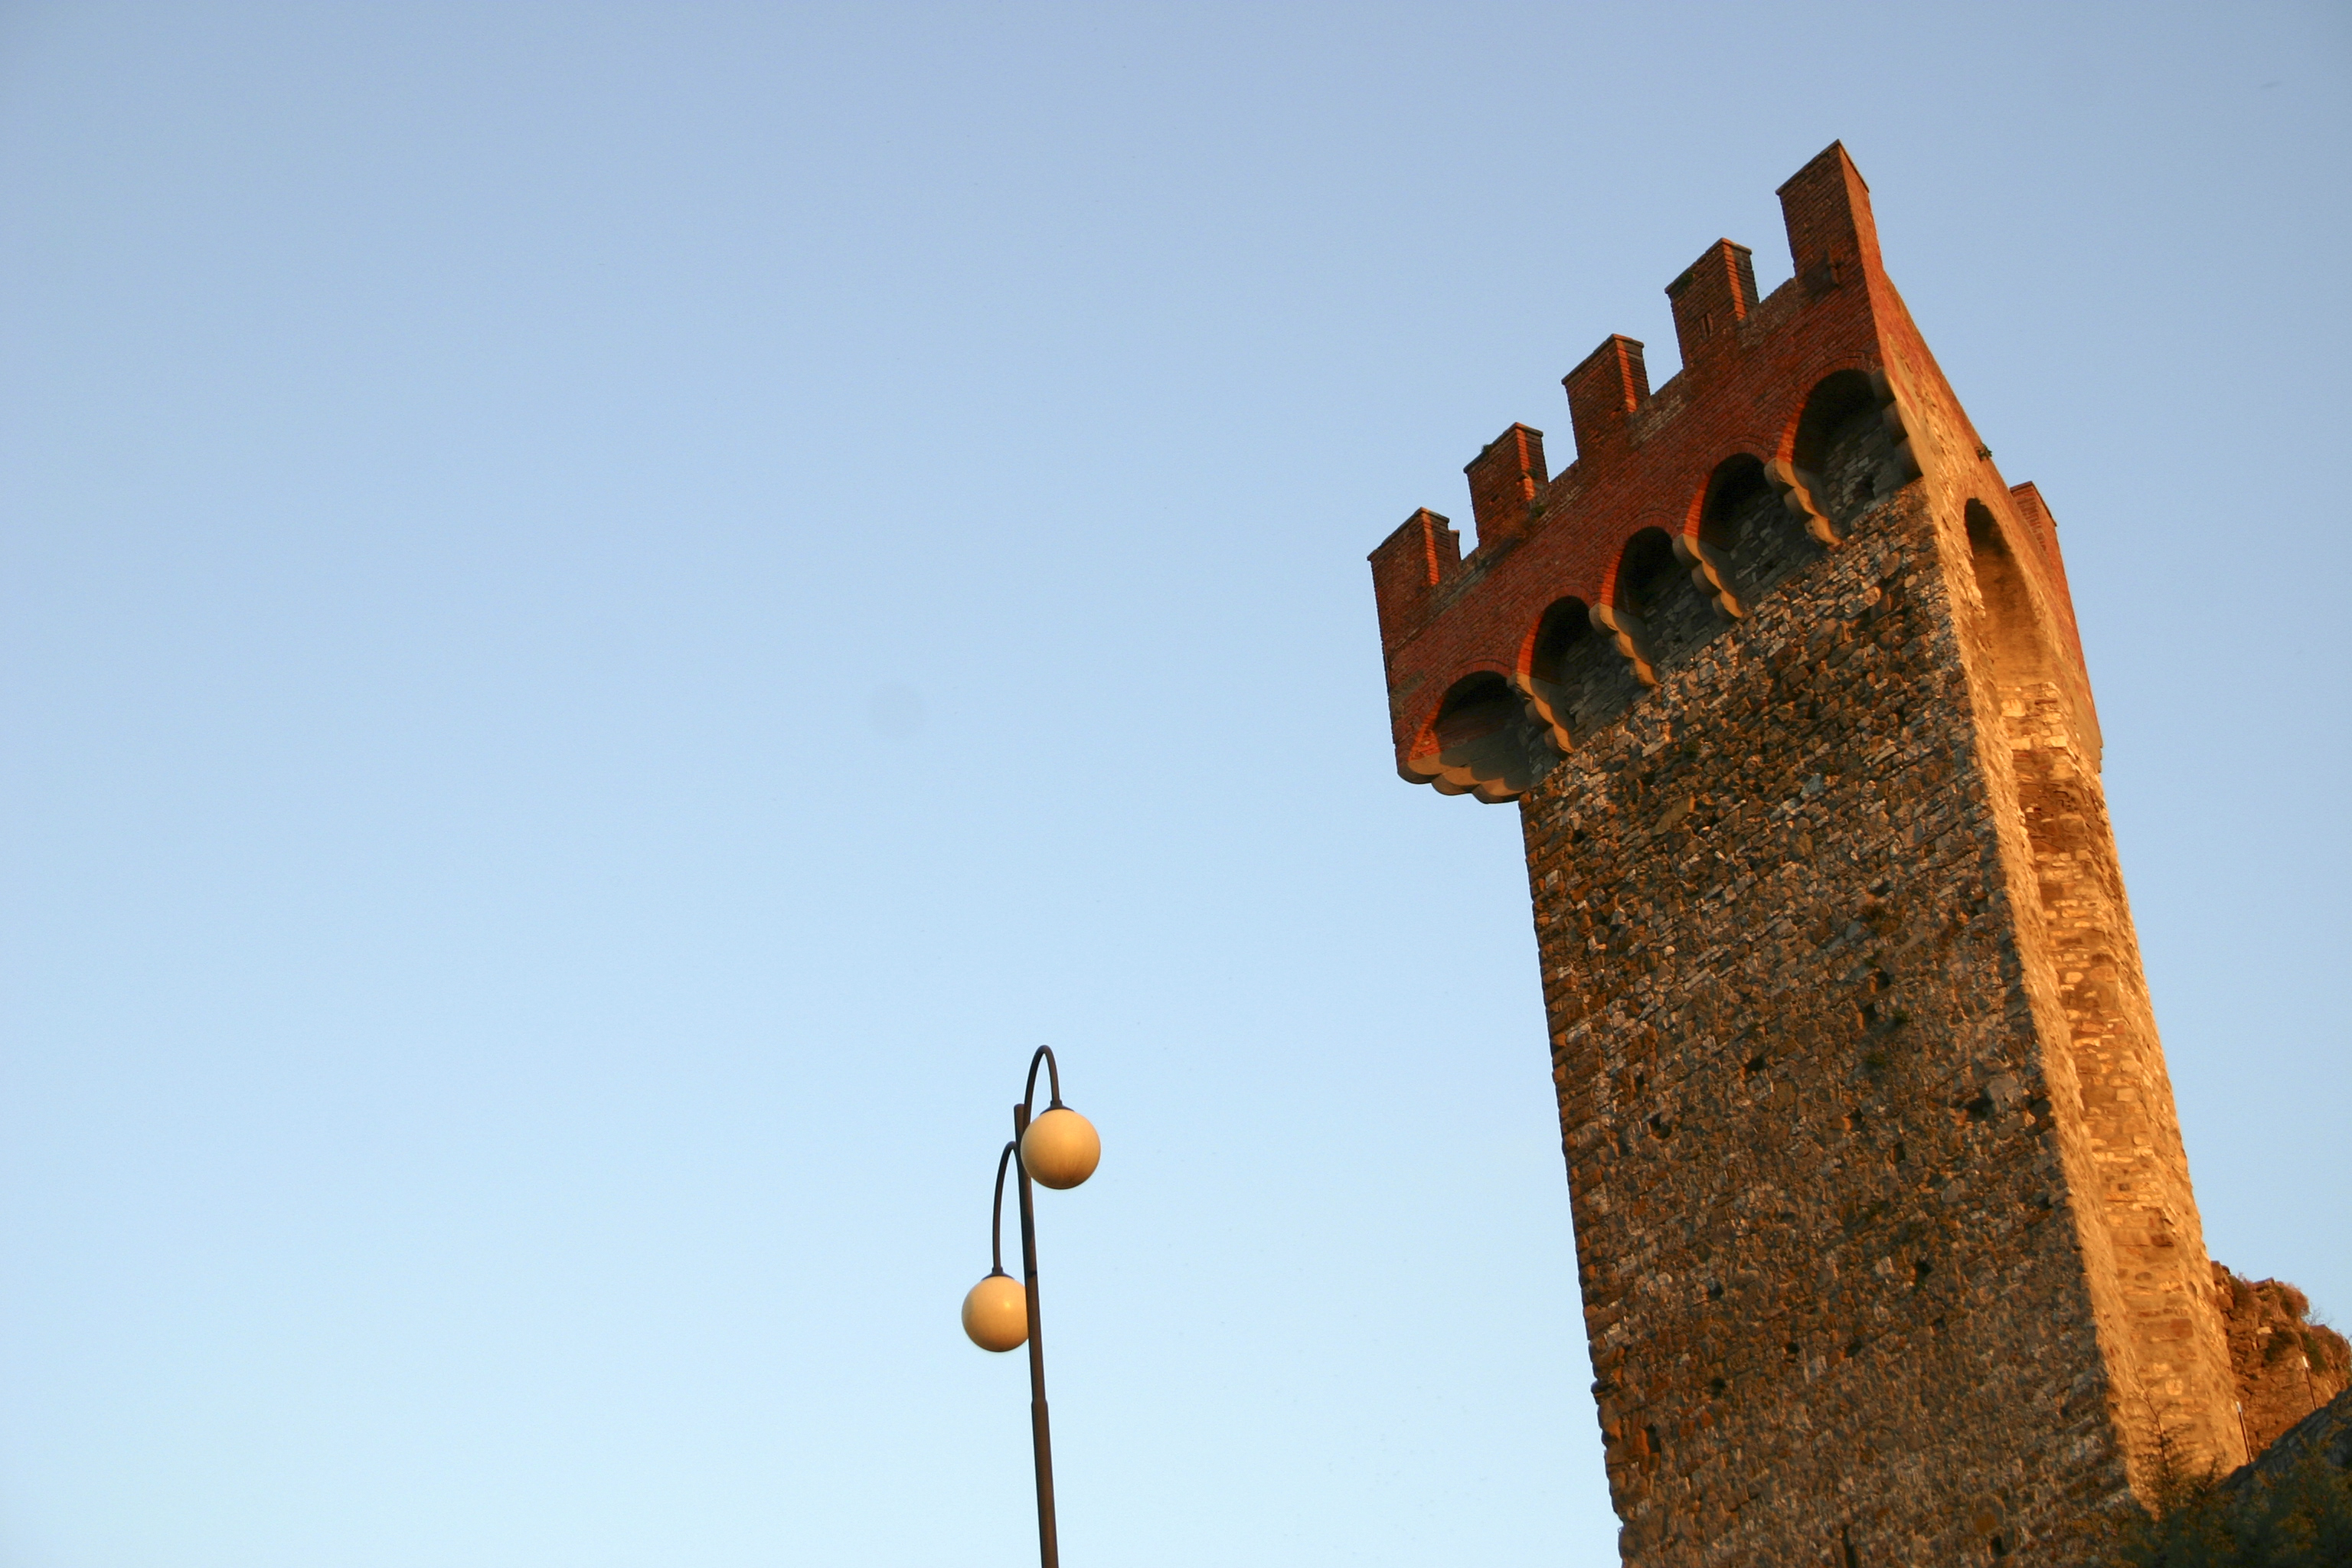 Light and Tower, Tresemeno, Italy